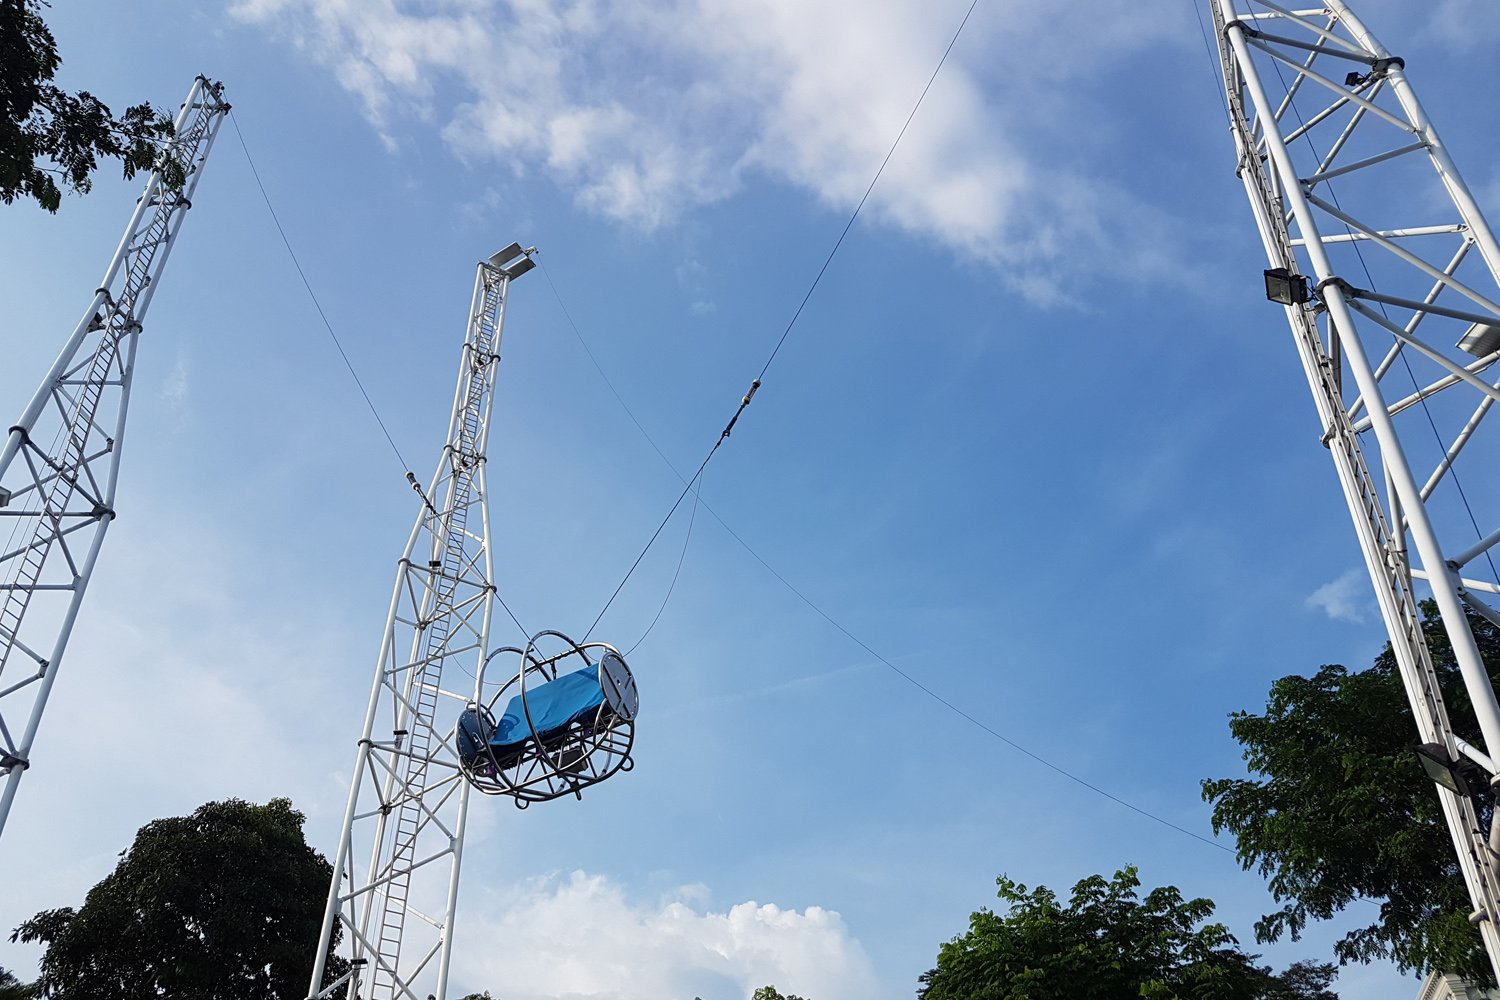 G-Max Reverse Bungy